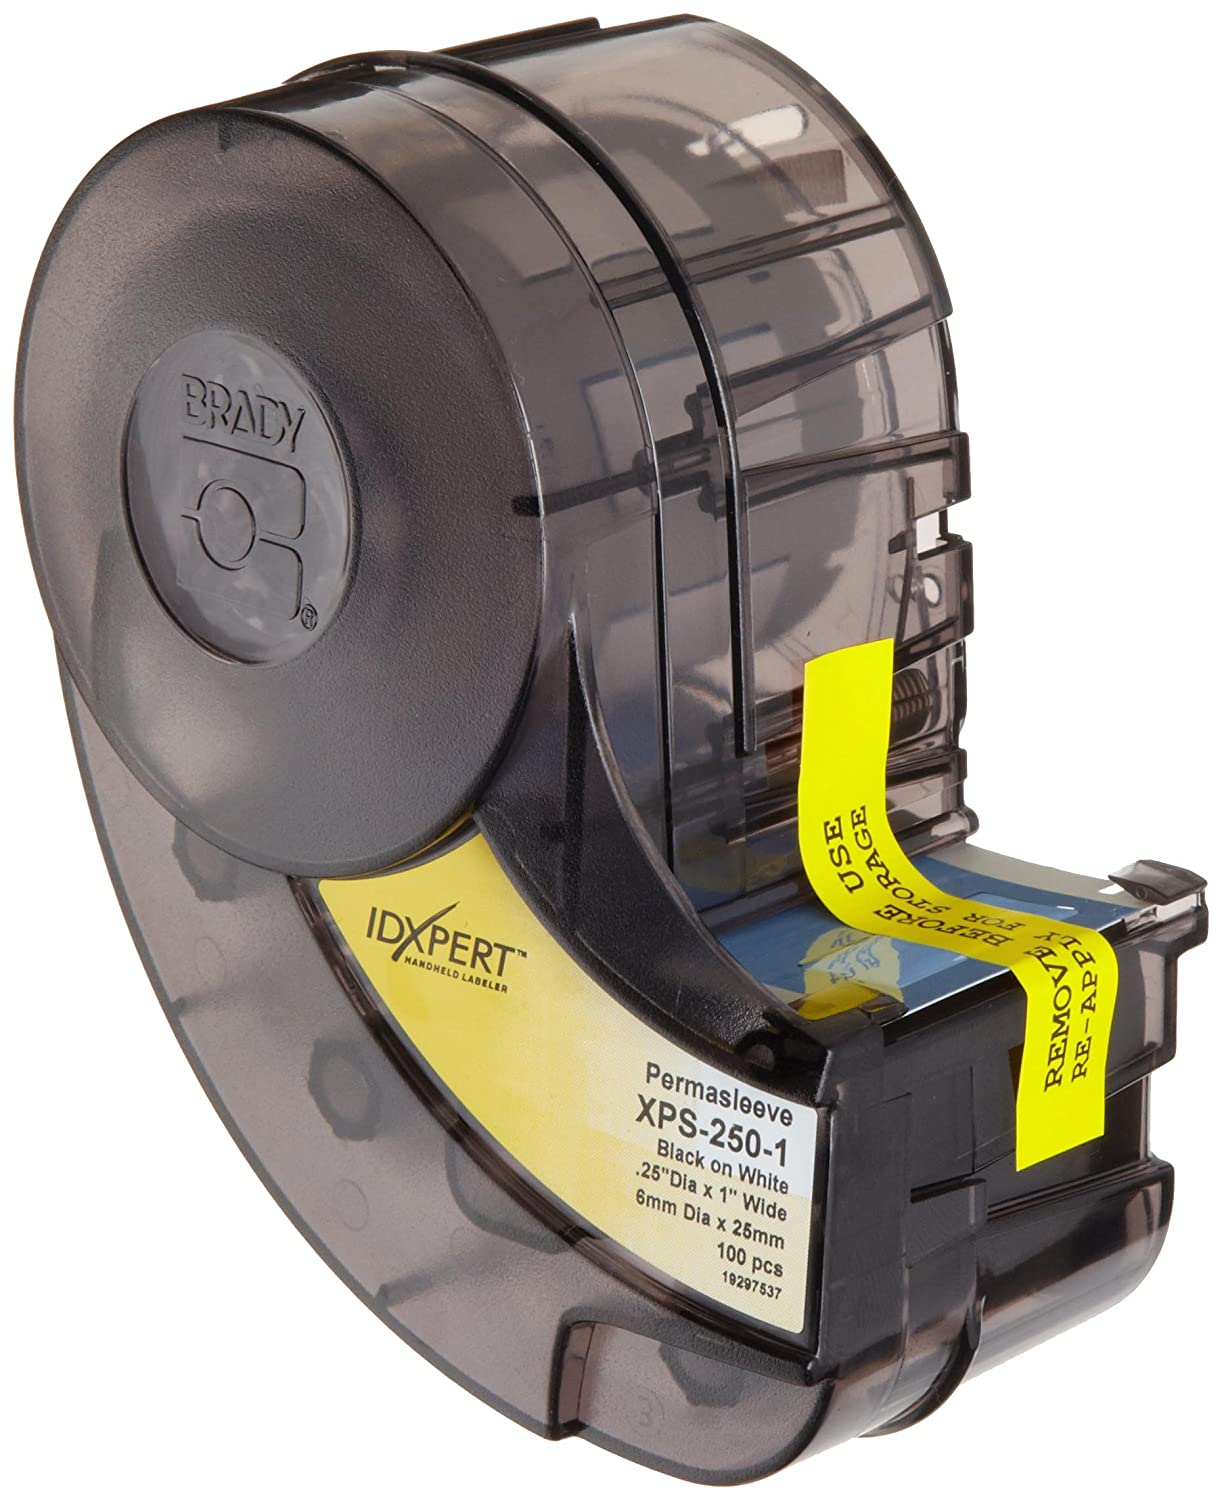 Brady XPS-125-1 IDXPERT PermaSleeve 0.235 Height 100 Per Cartridge B-342 Heat-Shrink Polyolefin 1.015 Width Black On White Color Wire Marker Sleeves